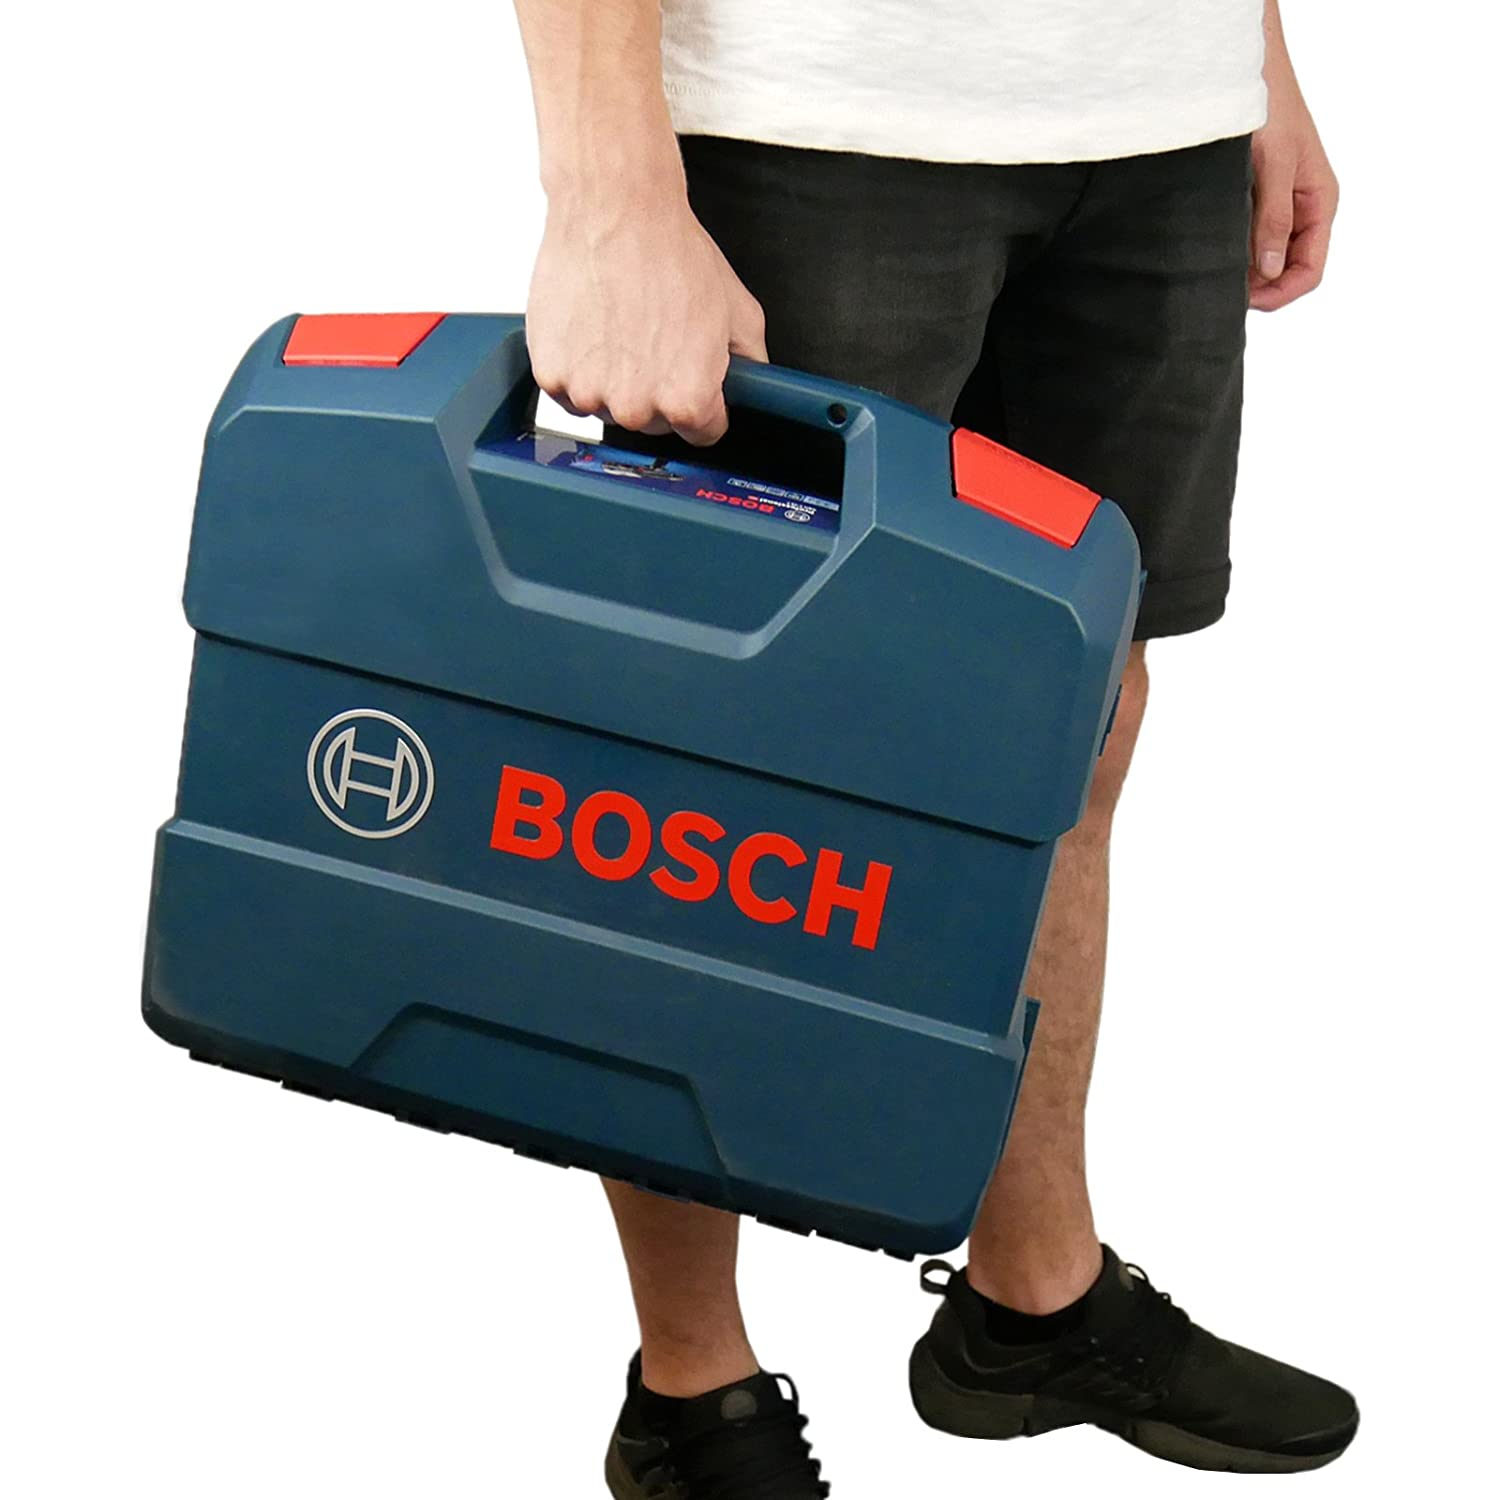 Bosch Professional Travel Carry Case To Hold Store Bor Hammer Gbh 28 Rotary 2 26 Dre And All Structurally Identical Models Diy Tools